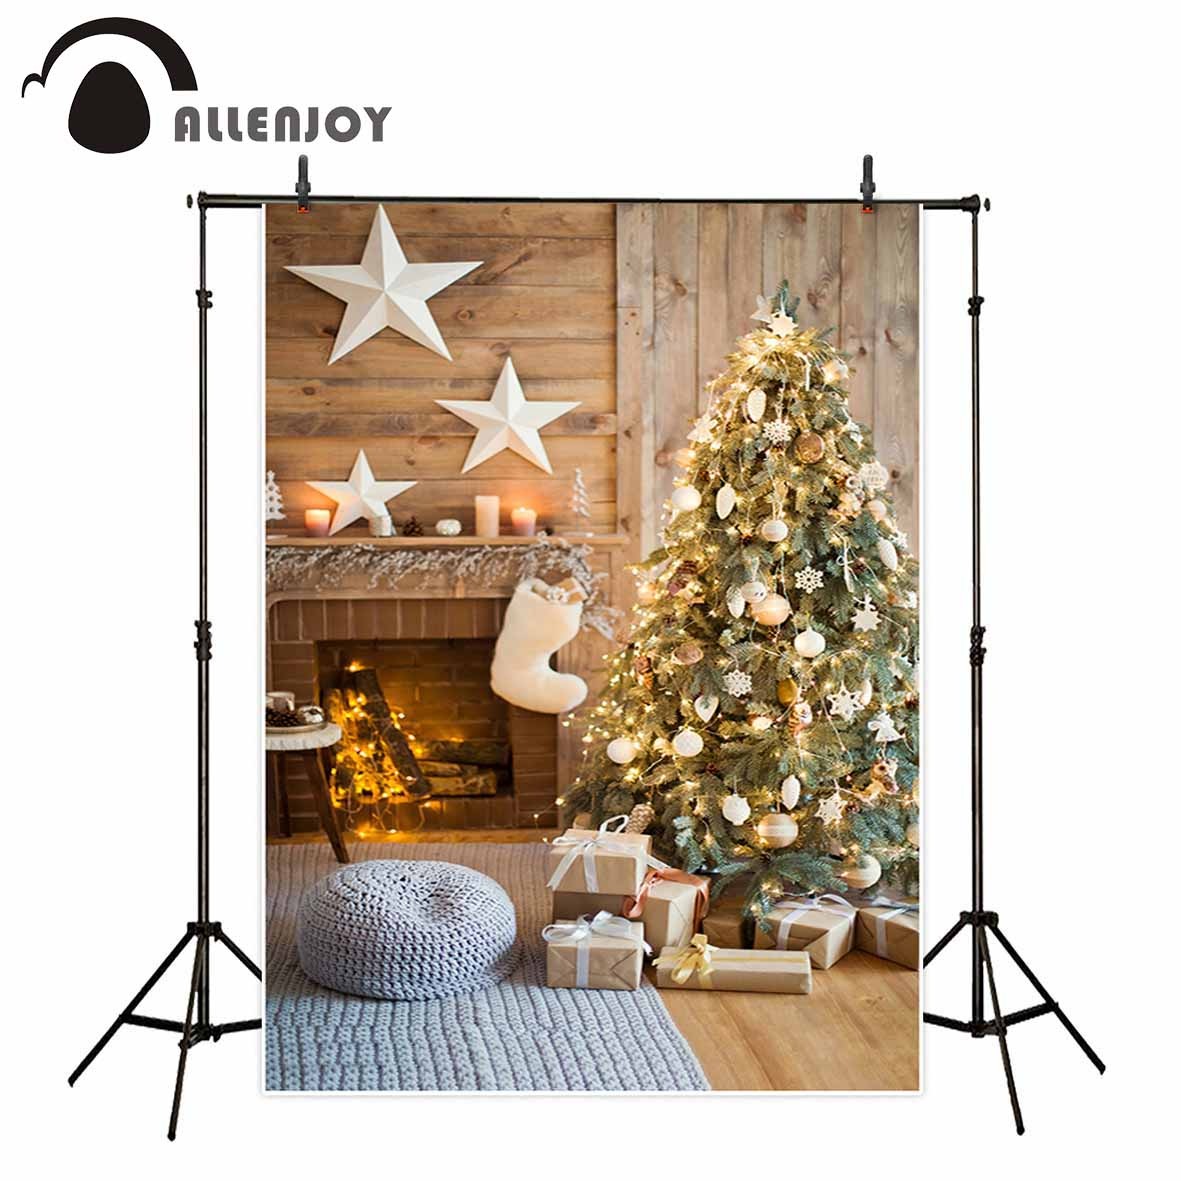 Allenjoy photographic background Closet carpet Christmas tree gift star child new backdrop photocall photo printed customize